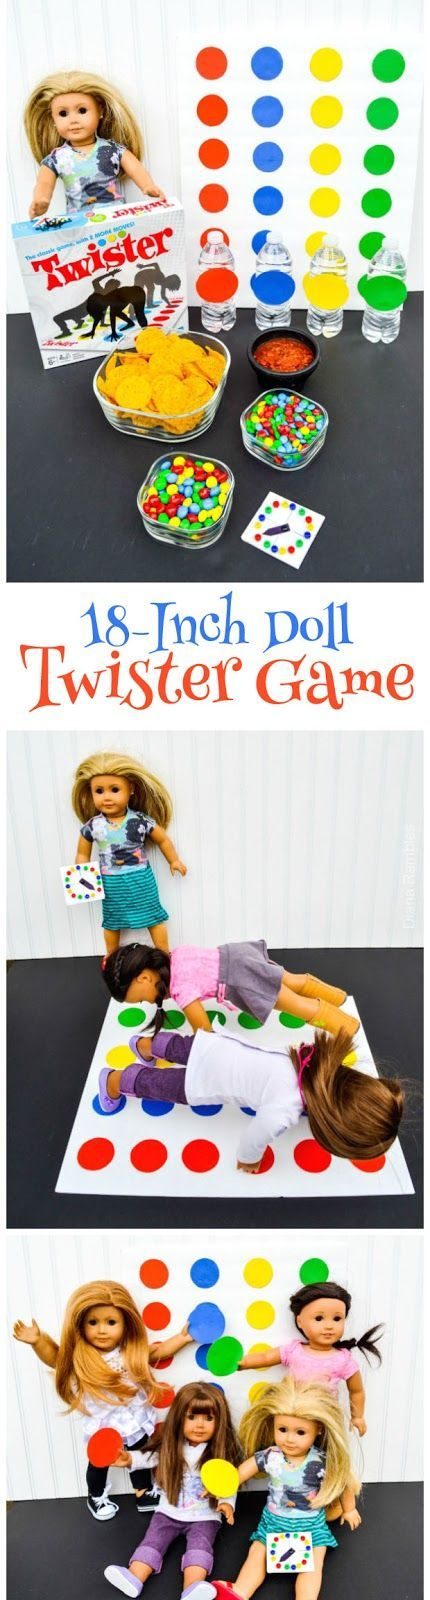 18-Inch Doll Twister Game Night  - Learn how to make this Twister Game for your American Girl Doll and have fun throwing a party too! AD #AmericanGirlDoll #DIY